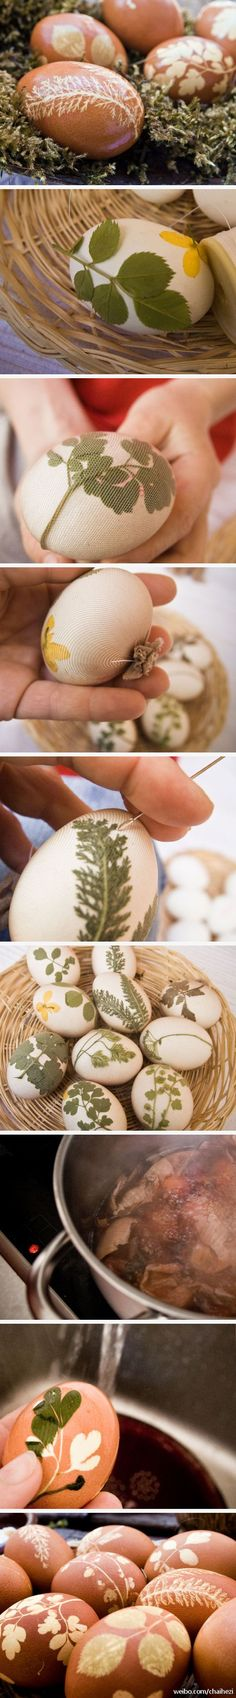 Latvian egg colouring! Al-natural. No dyes needed.